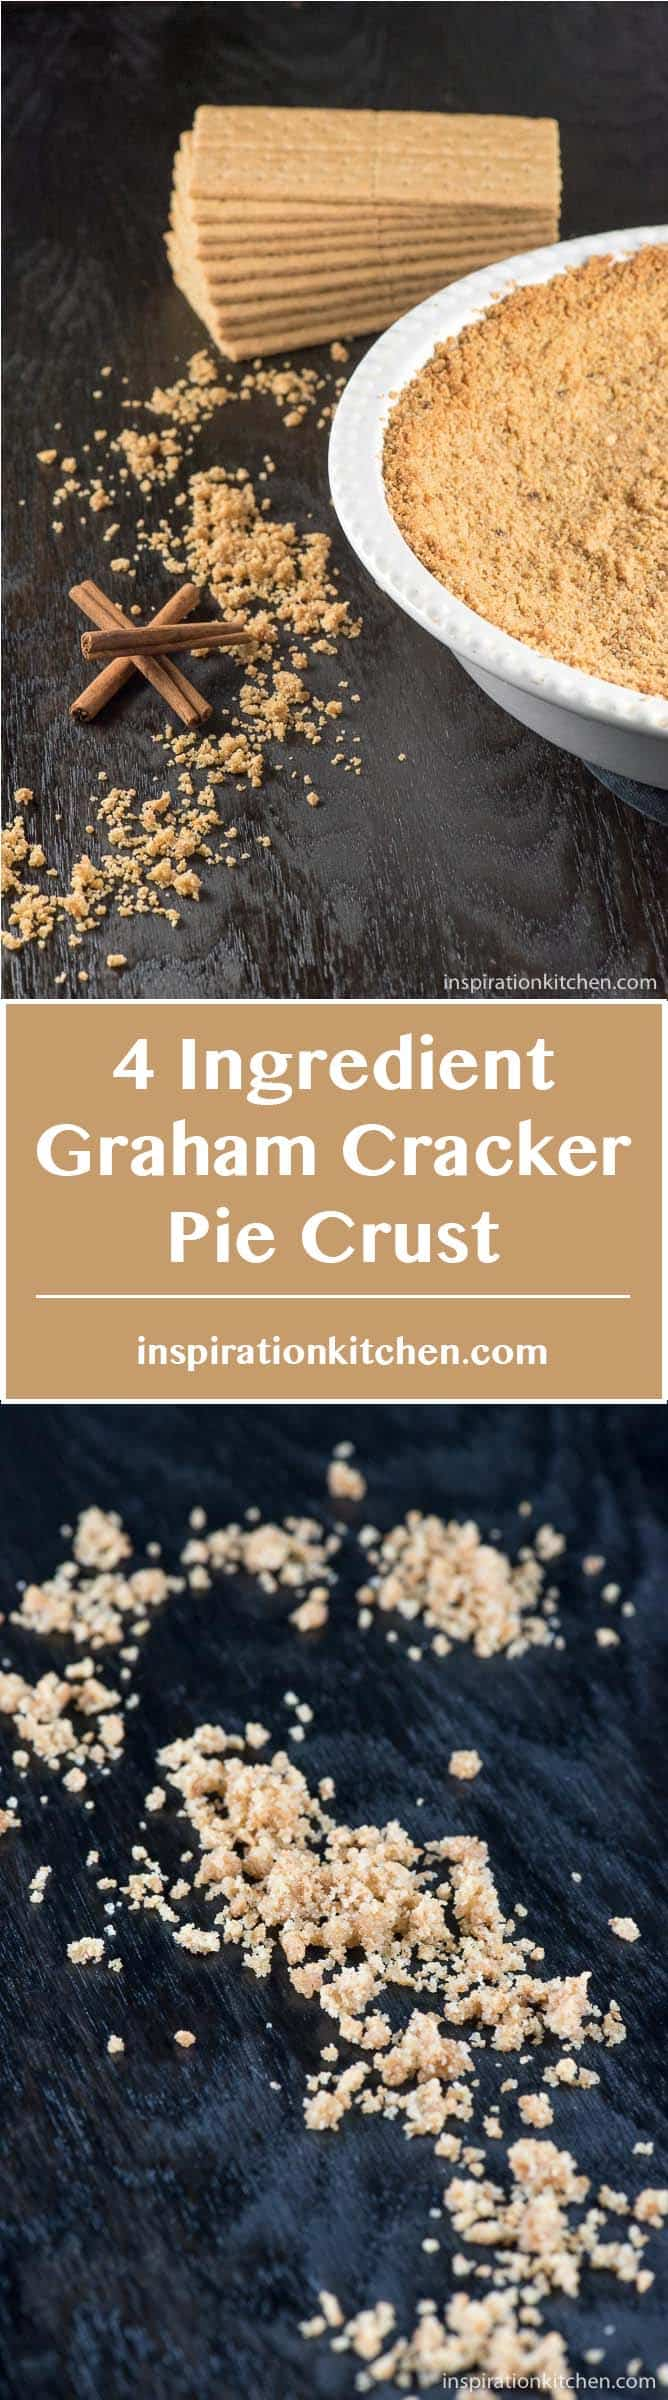 4 Ingredient Graham Cracker Pie Crust - inspirationkitchen.com